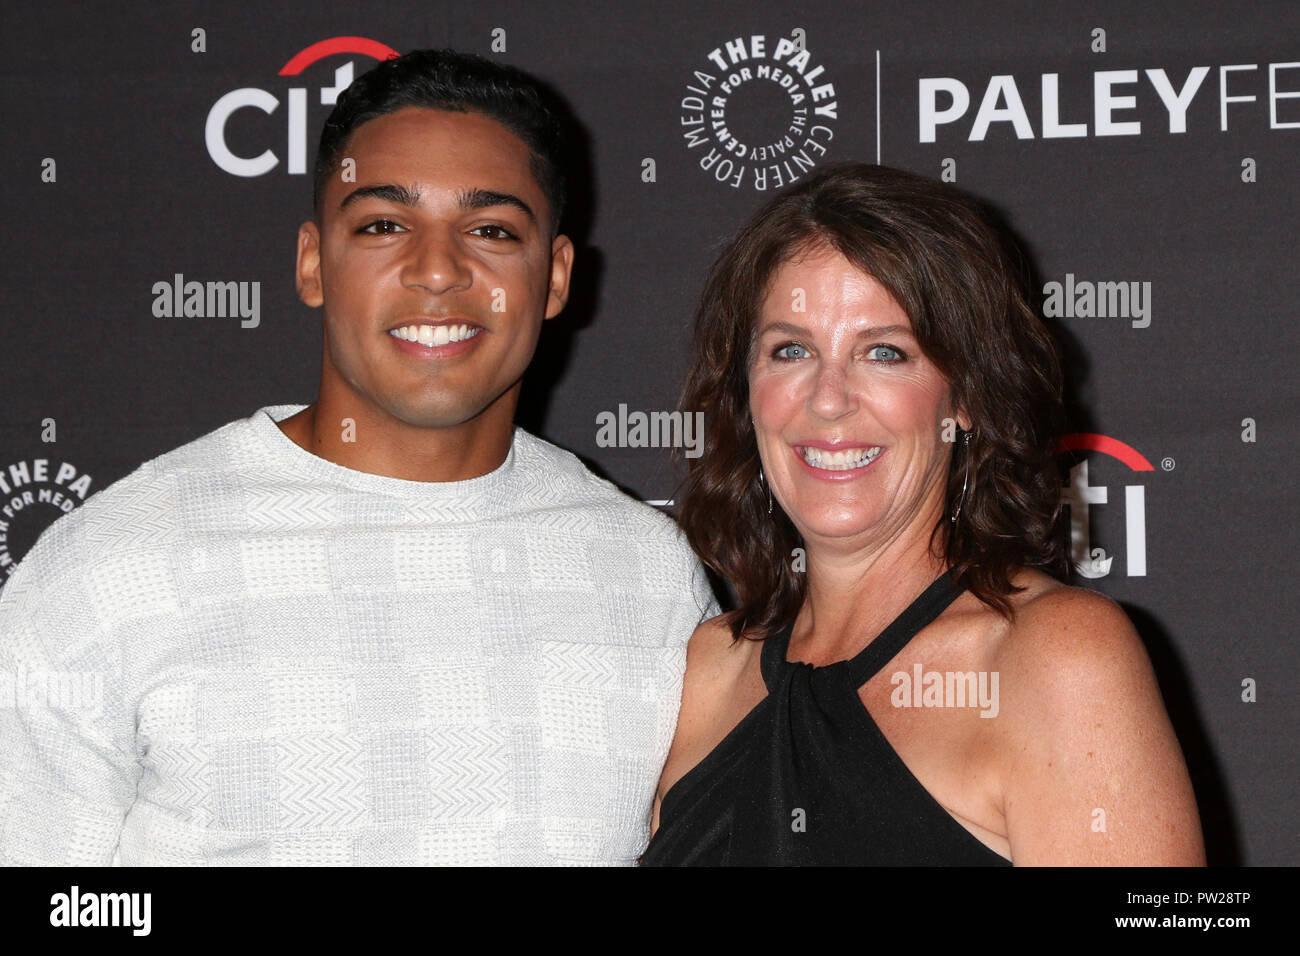 12th Paleyfest Fall Tv Previews The Cw Screenings Featuring Michael Evans Behling Carol Behling Where Beverly Hills California United States When 08 Sep 2018 Credit Nicky Nelson Wenn Com Stock Photo Alamy